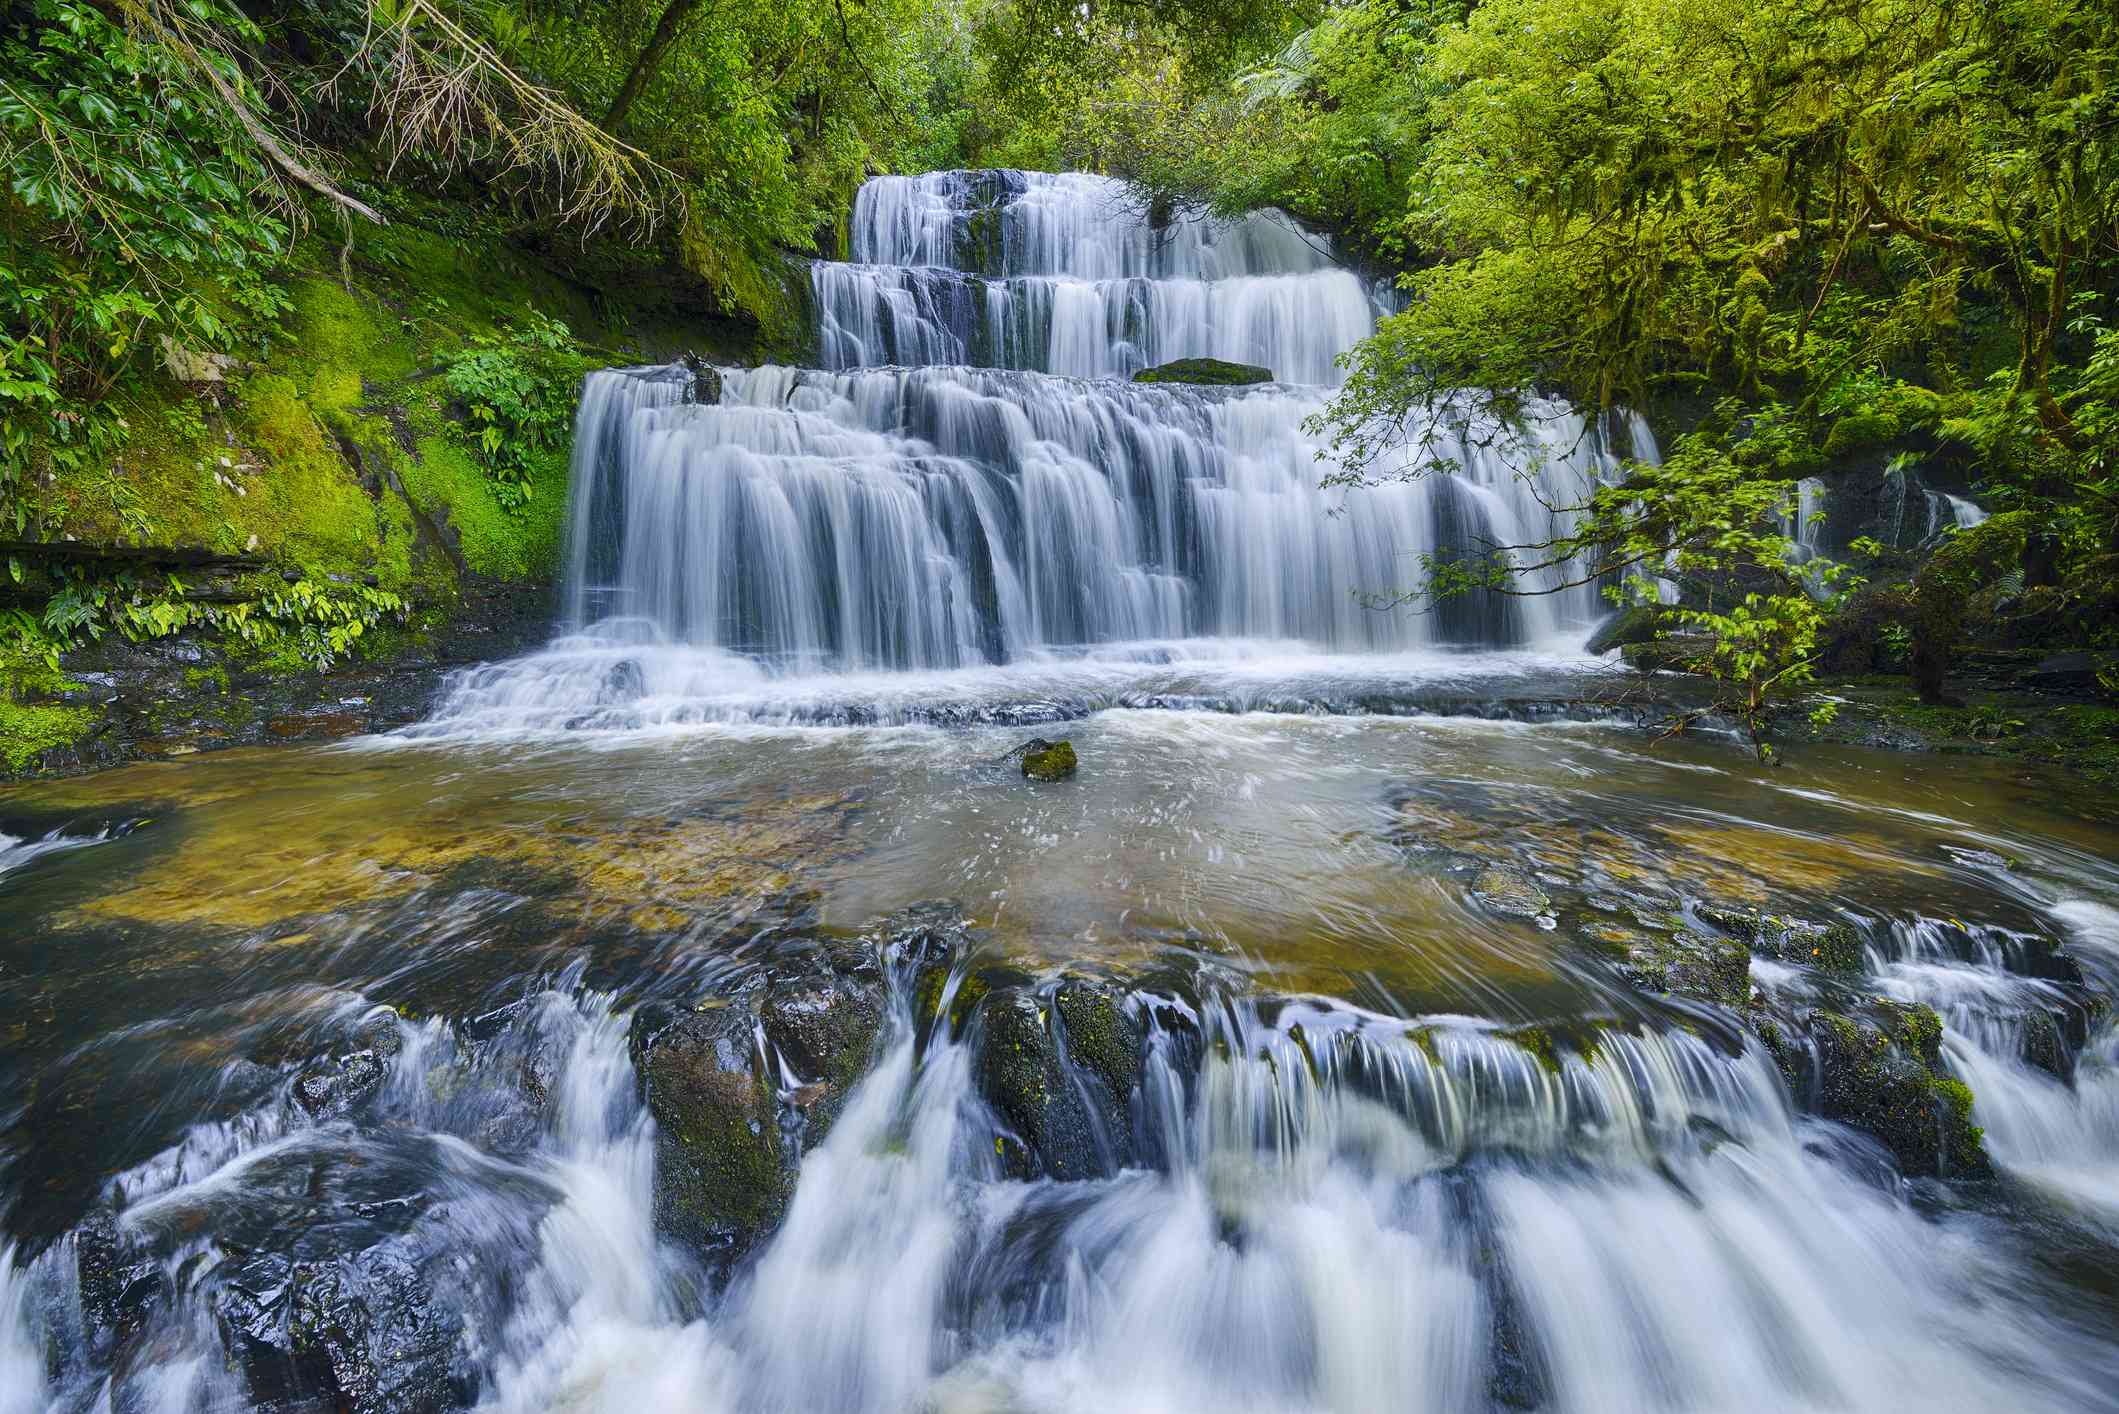 multi-tiered waterfalls surrounded by forest